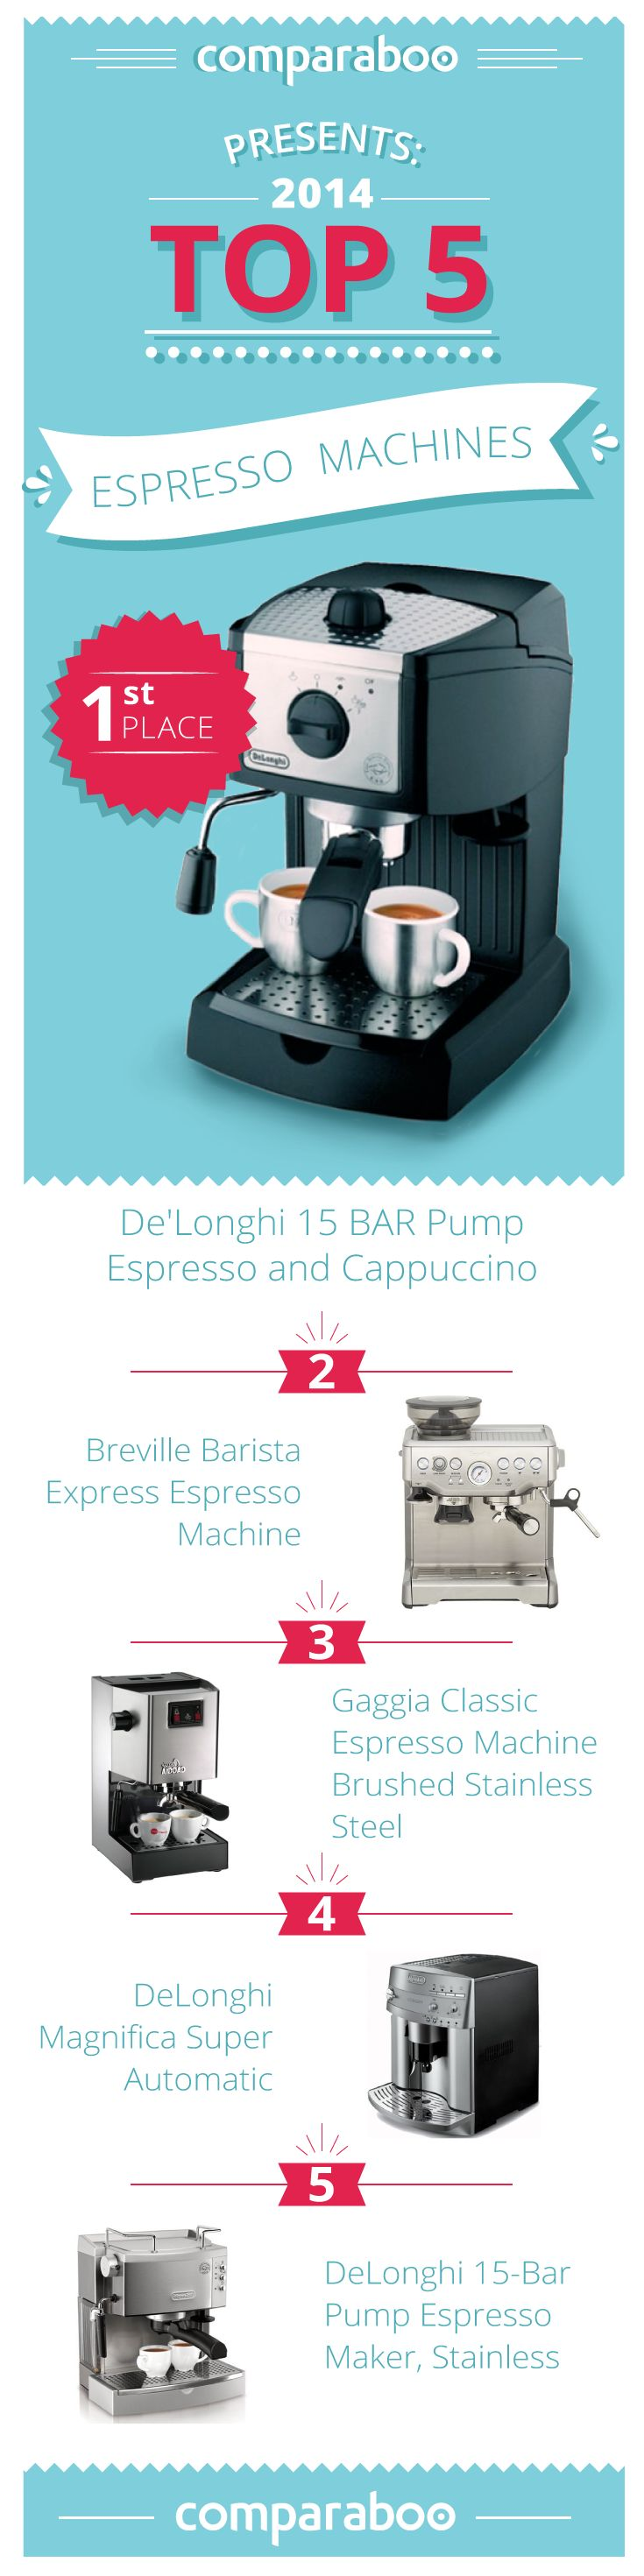 Choosing an espresso machine can be tricky: stream-driven? pump-driven? manual? semi-automatic? Super automatic? To make your shopping life easier, Comparaboo has compiled a list of the top espresso machines: http://www.comparaboo.com/espresso-machines #coffee